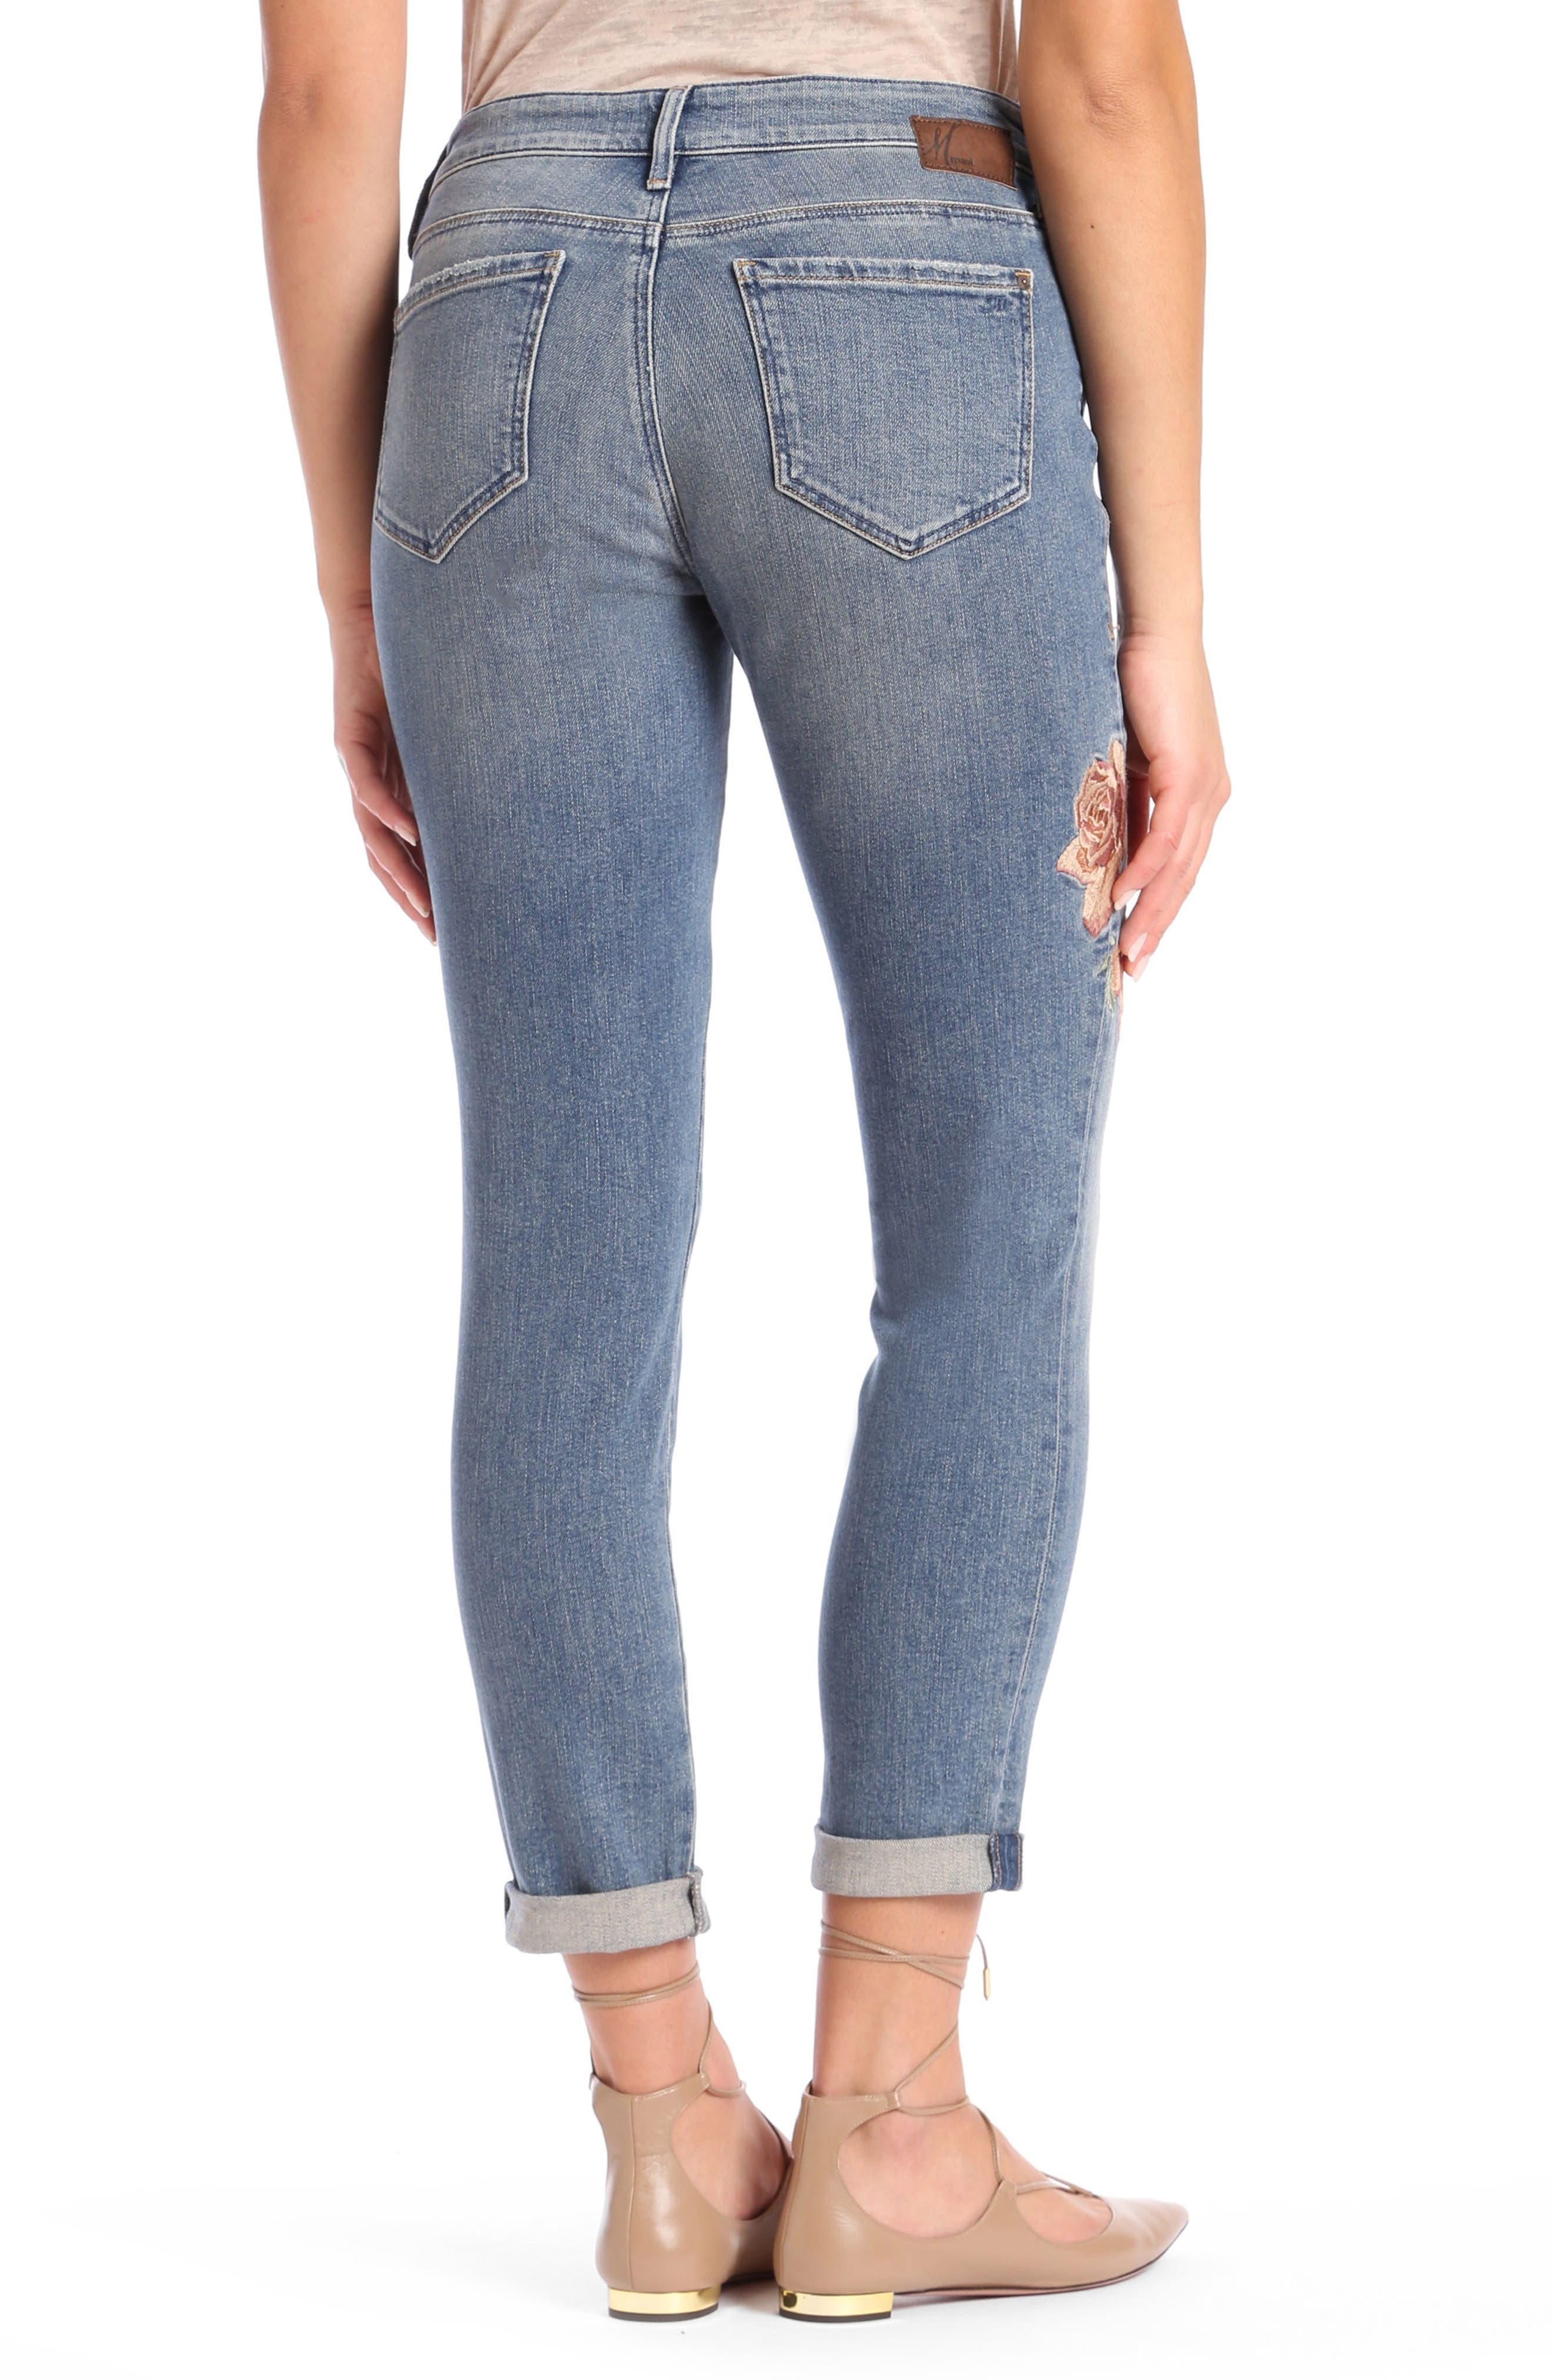 Ada Embroidered Boyfriend Jeans,                             Alternate thumbnail 2, color,                             Mid Rose Embroidery